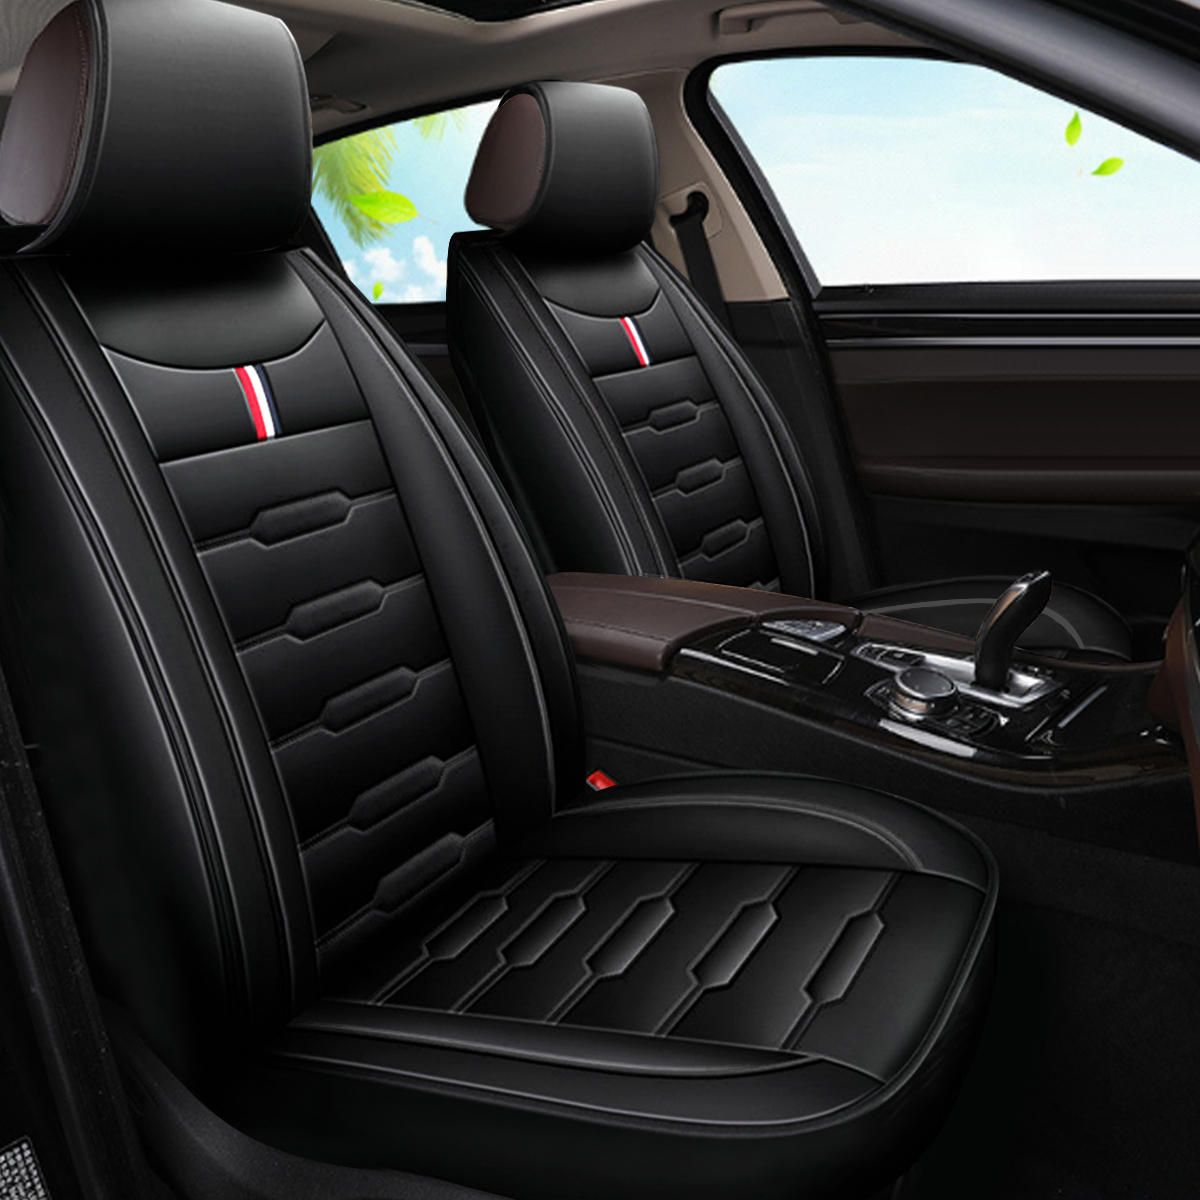 Pu Leather Front Car Seat Cover Cushion Protector For 5 Seats Sedan Suv Van Auto Parts From Automobiles Motorcycles On Banggood Com In 2020 Leather Car Seats Leather Car Seat Covers Car